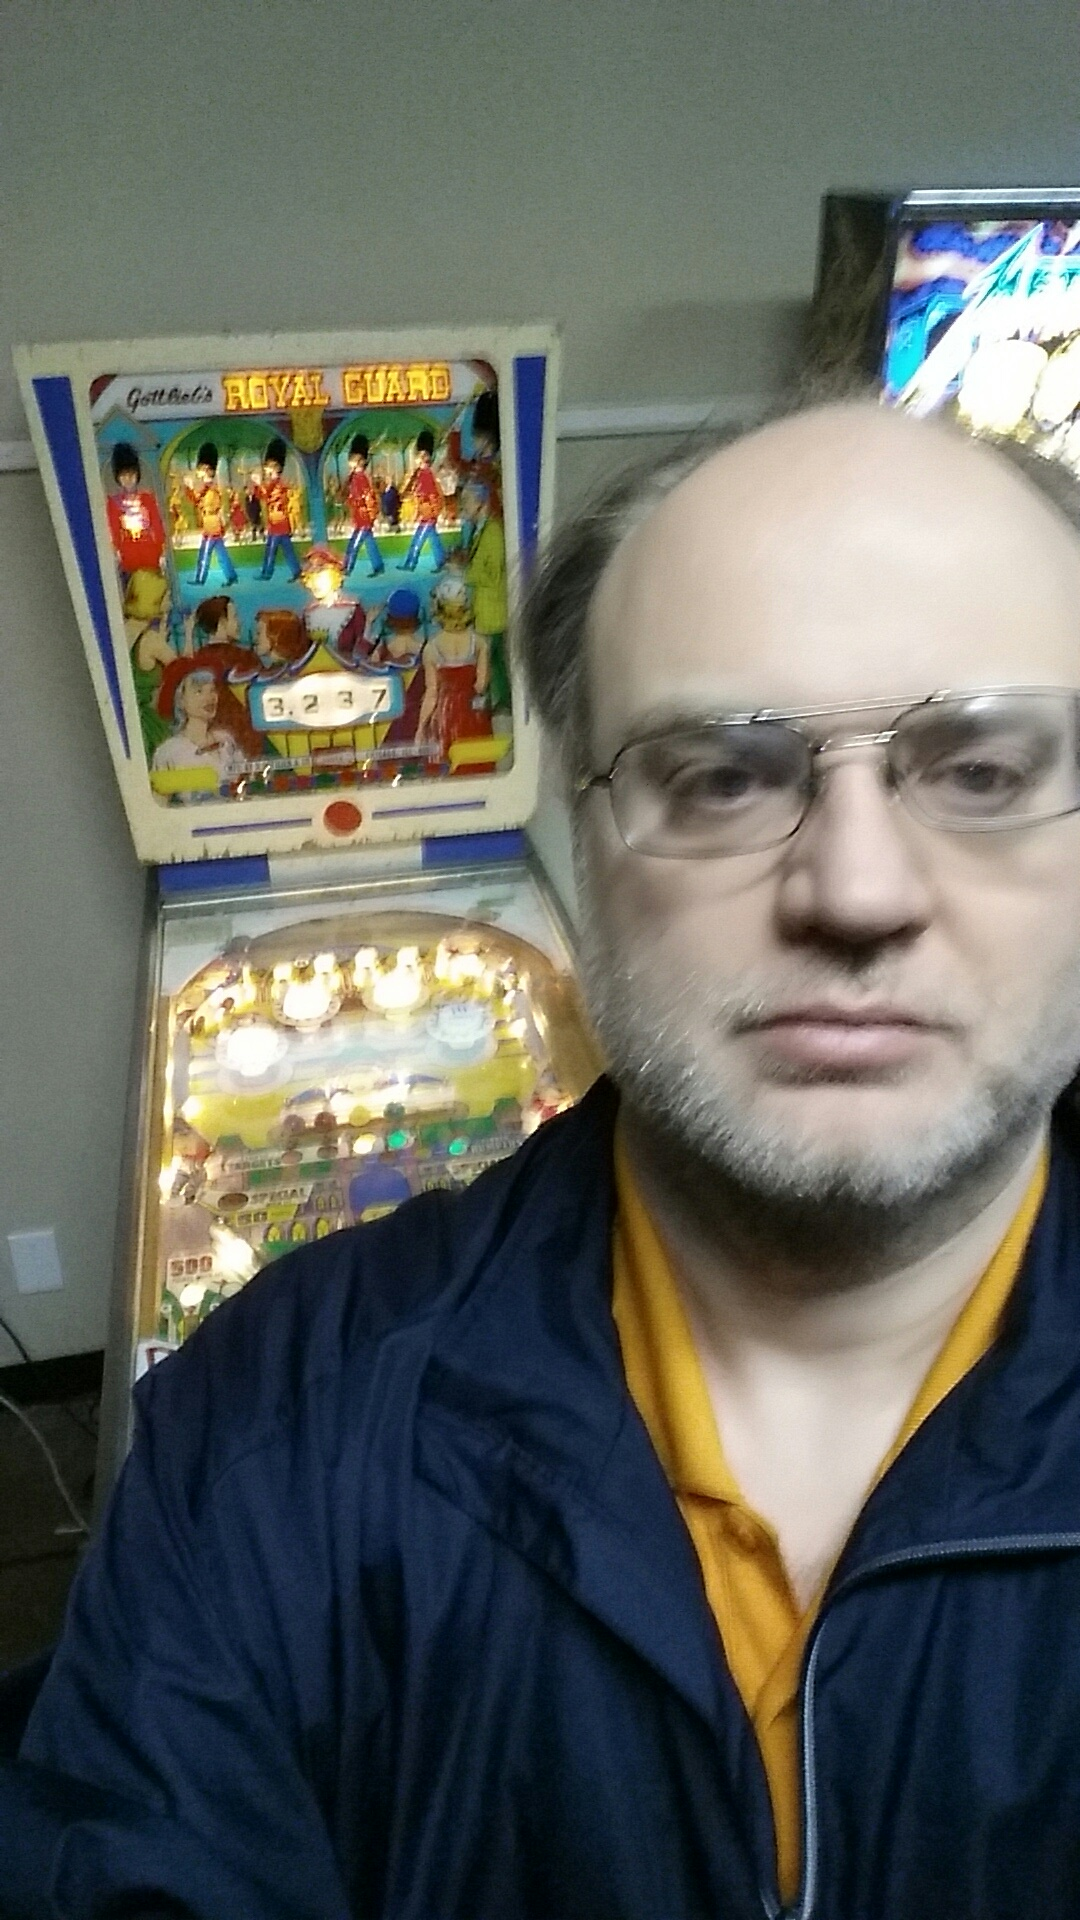 SeanStewart: Royal Guard (Pinball: 5 Balls) 3,237 points on 2018-03-24 16:03:32